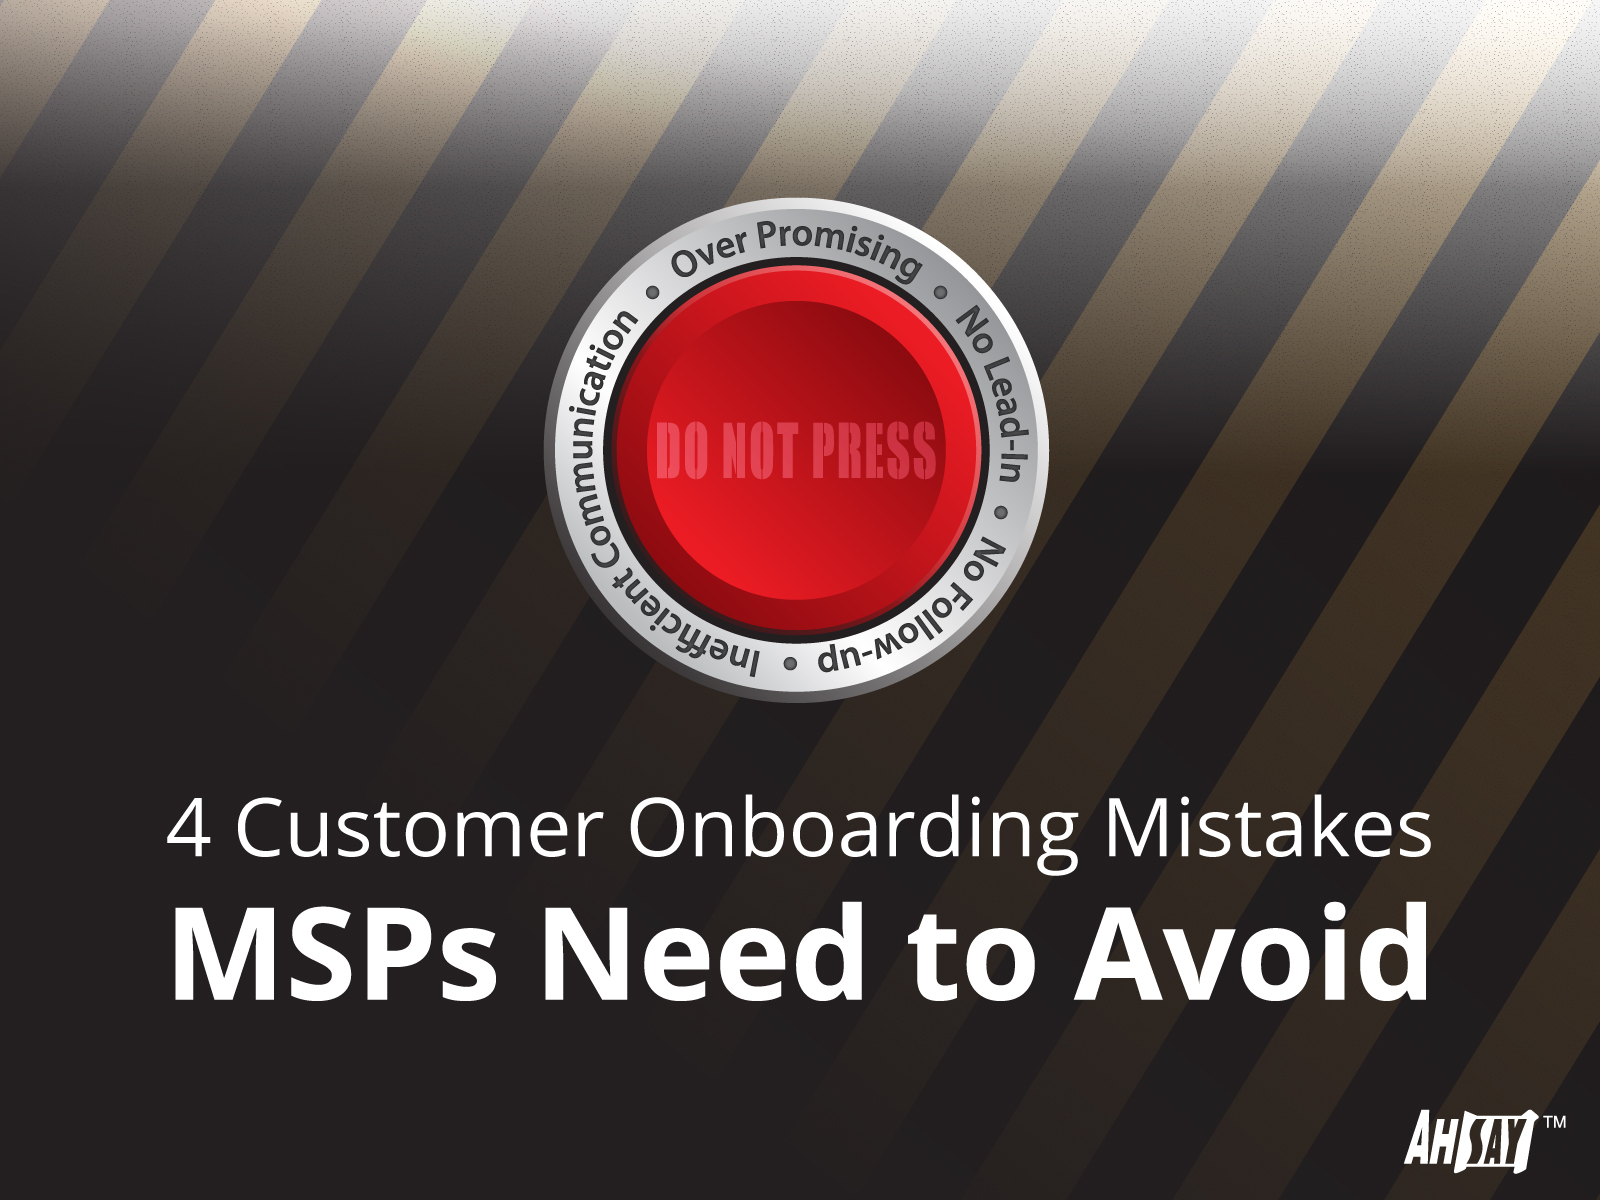 4-Customer-Onboarding-Mistakes-MSPs-Need-to-Avoid